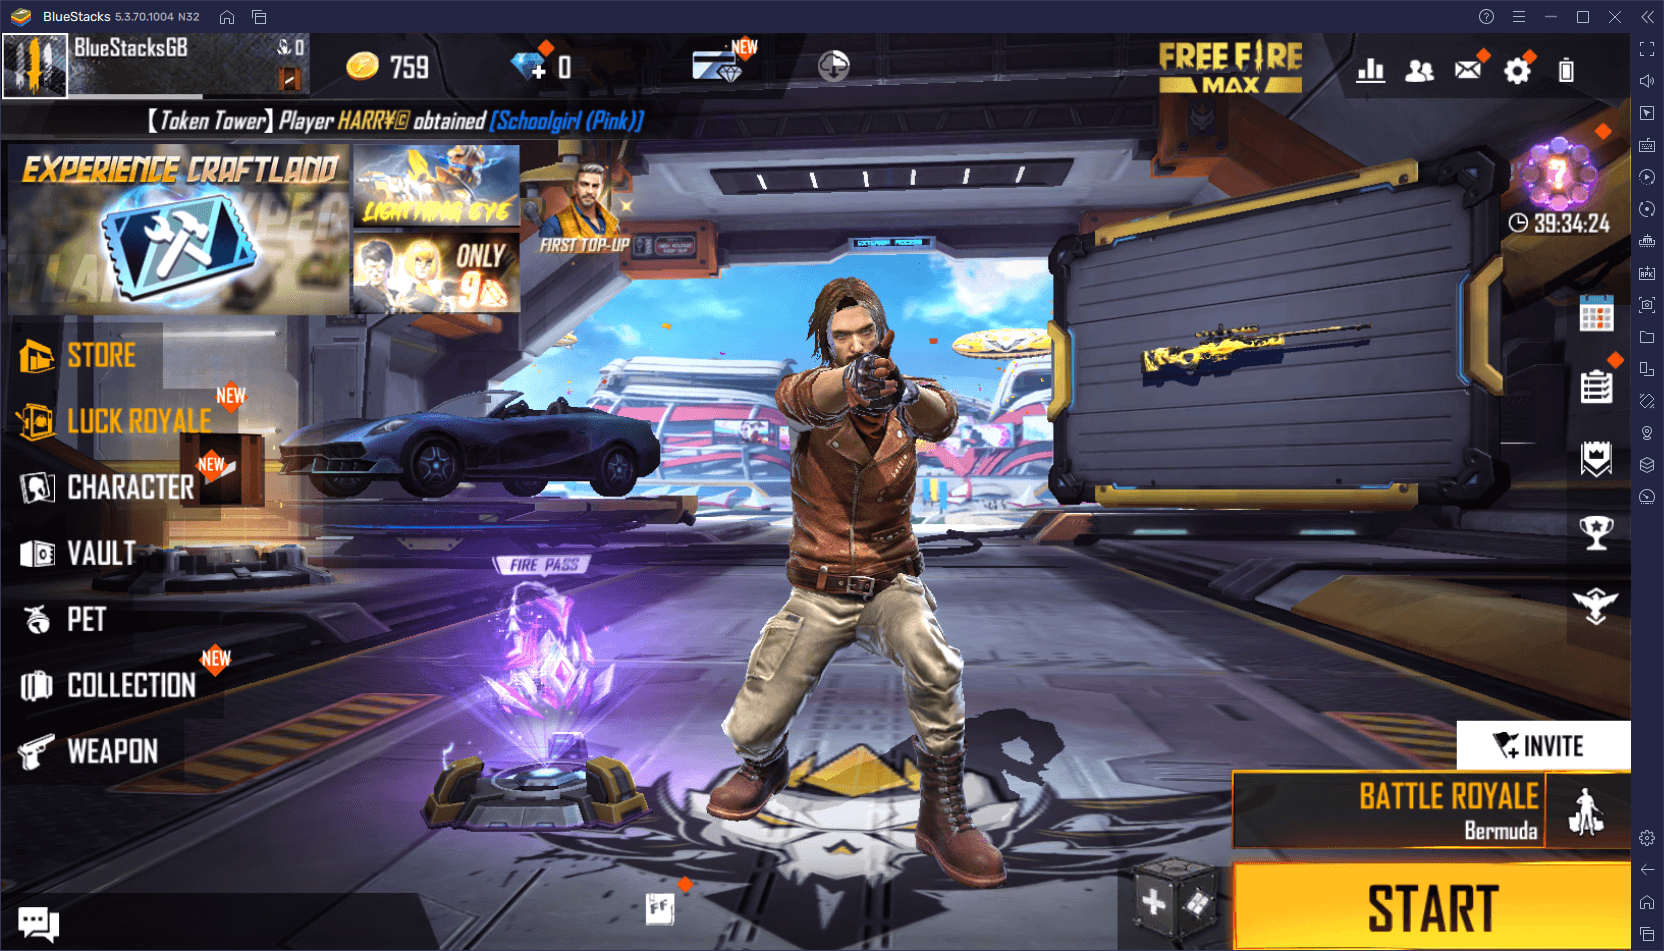 Free Fire MAX on PC – Use BlueStacks to get the Headshots and Booyahs